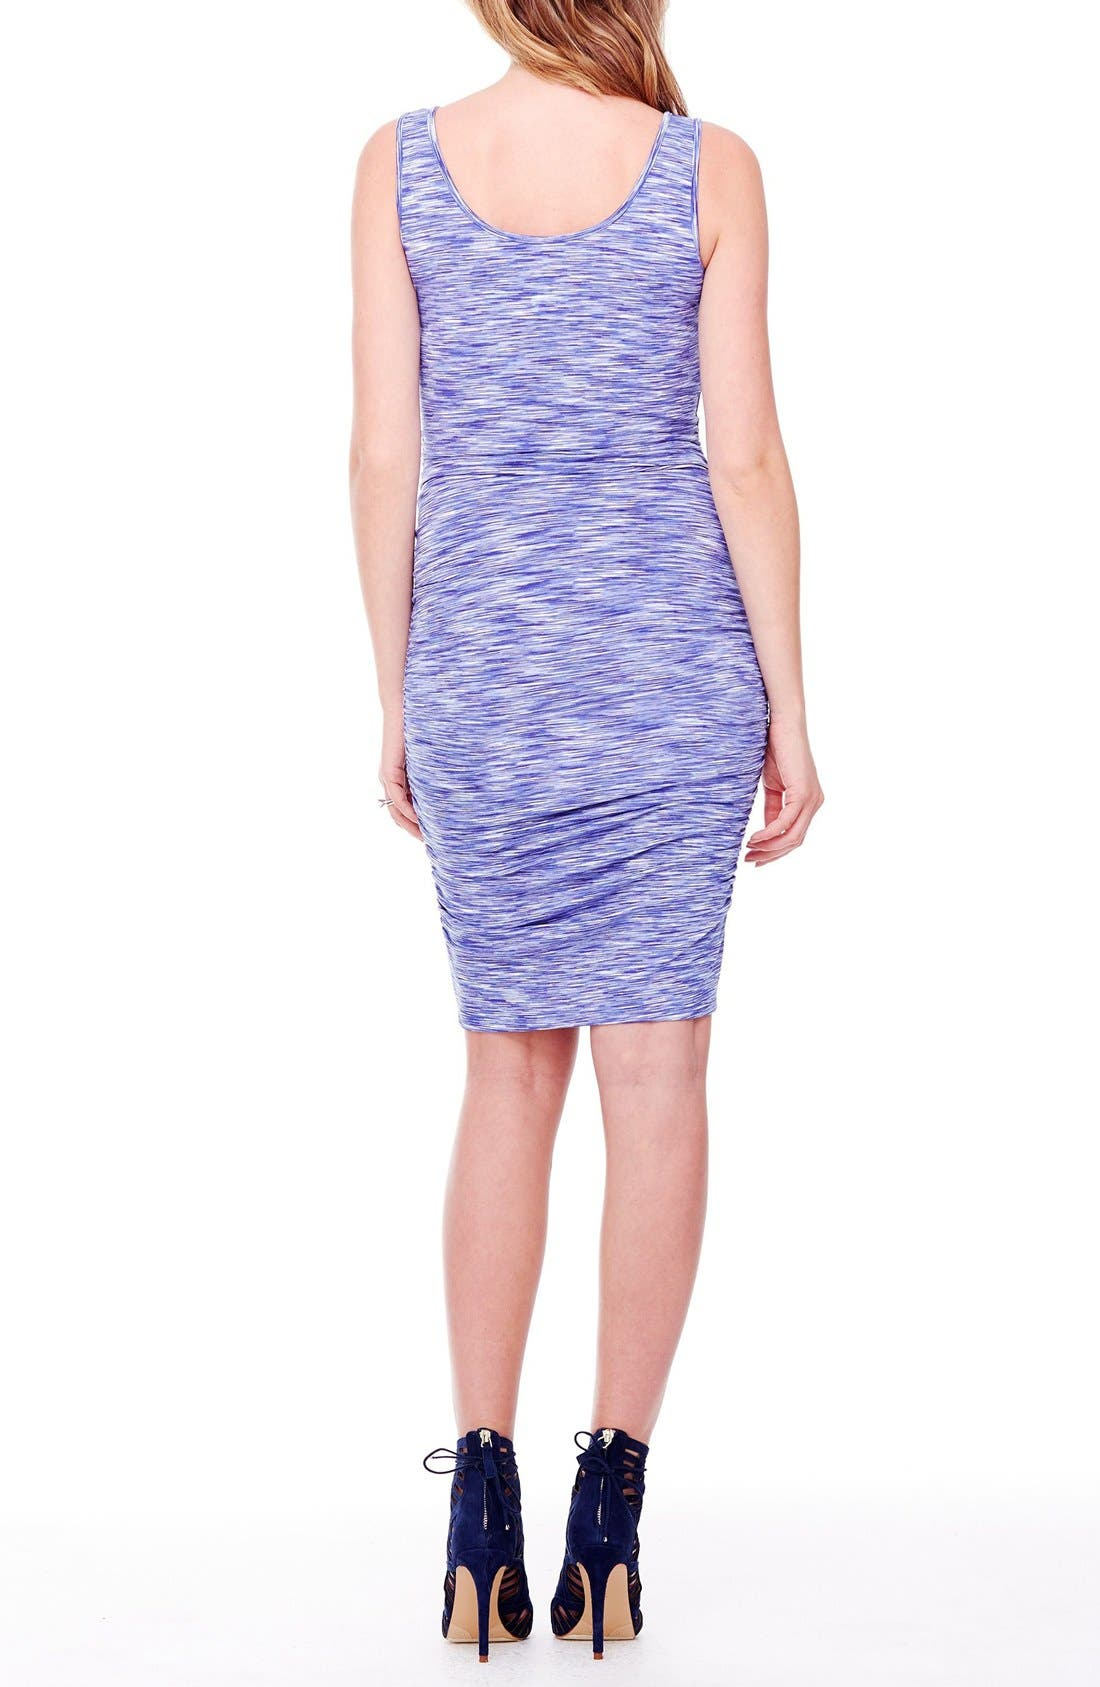 Space Dye Ruched Maternity Tank Dress,                             Alternate thumbnail 2, color,                             Cobalt Space Dye